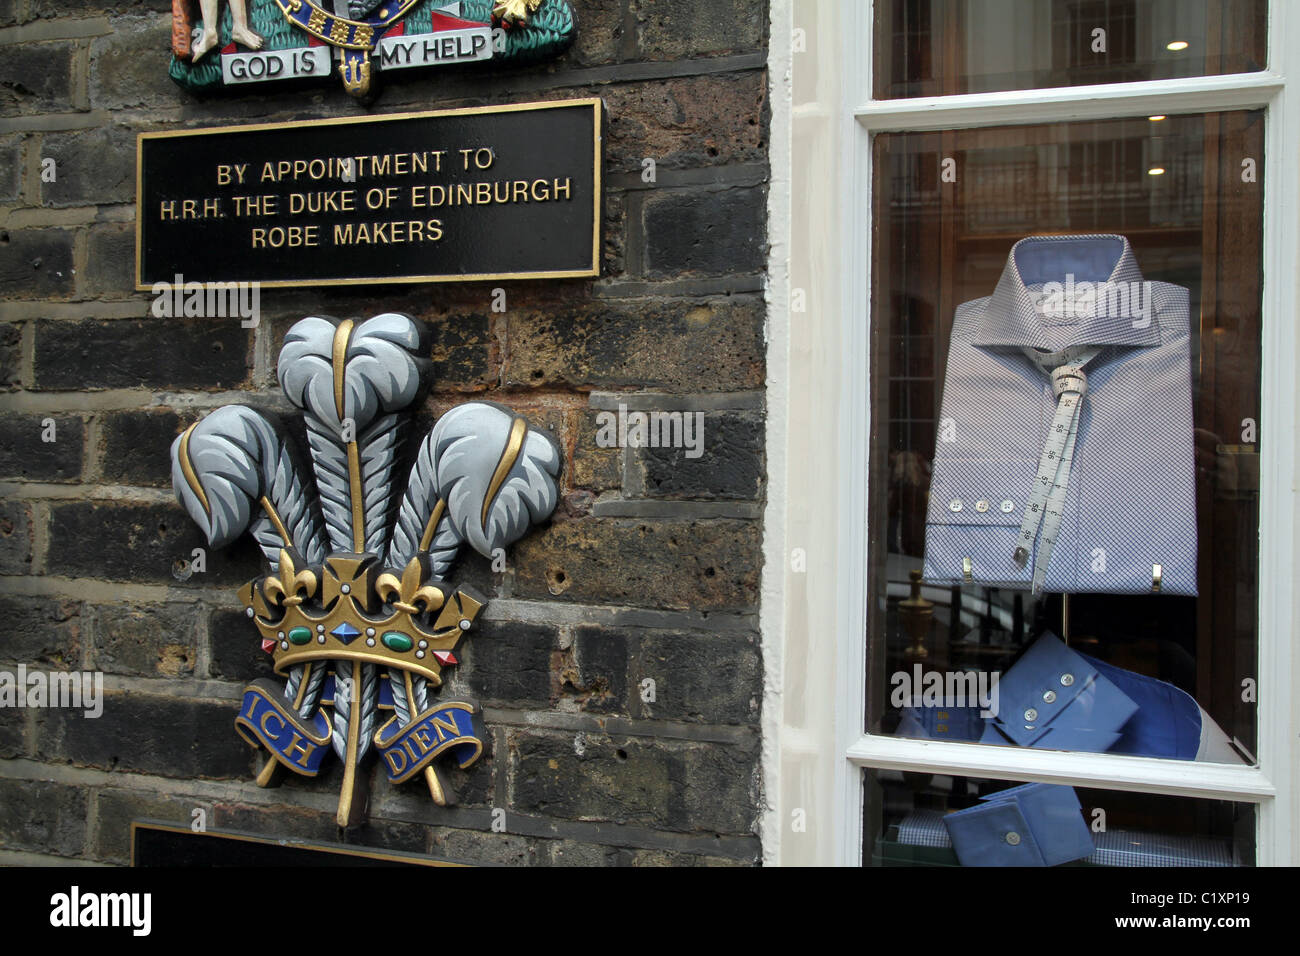 UK. Shirtmakers shop in Saville Row in London, with Royal appointment plaque on wall. - Stock Image